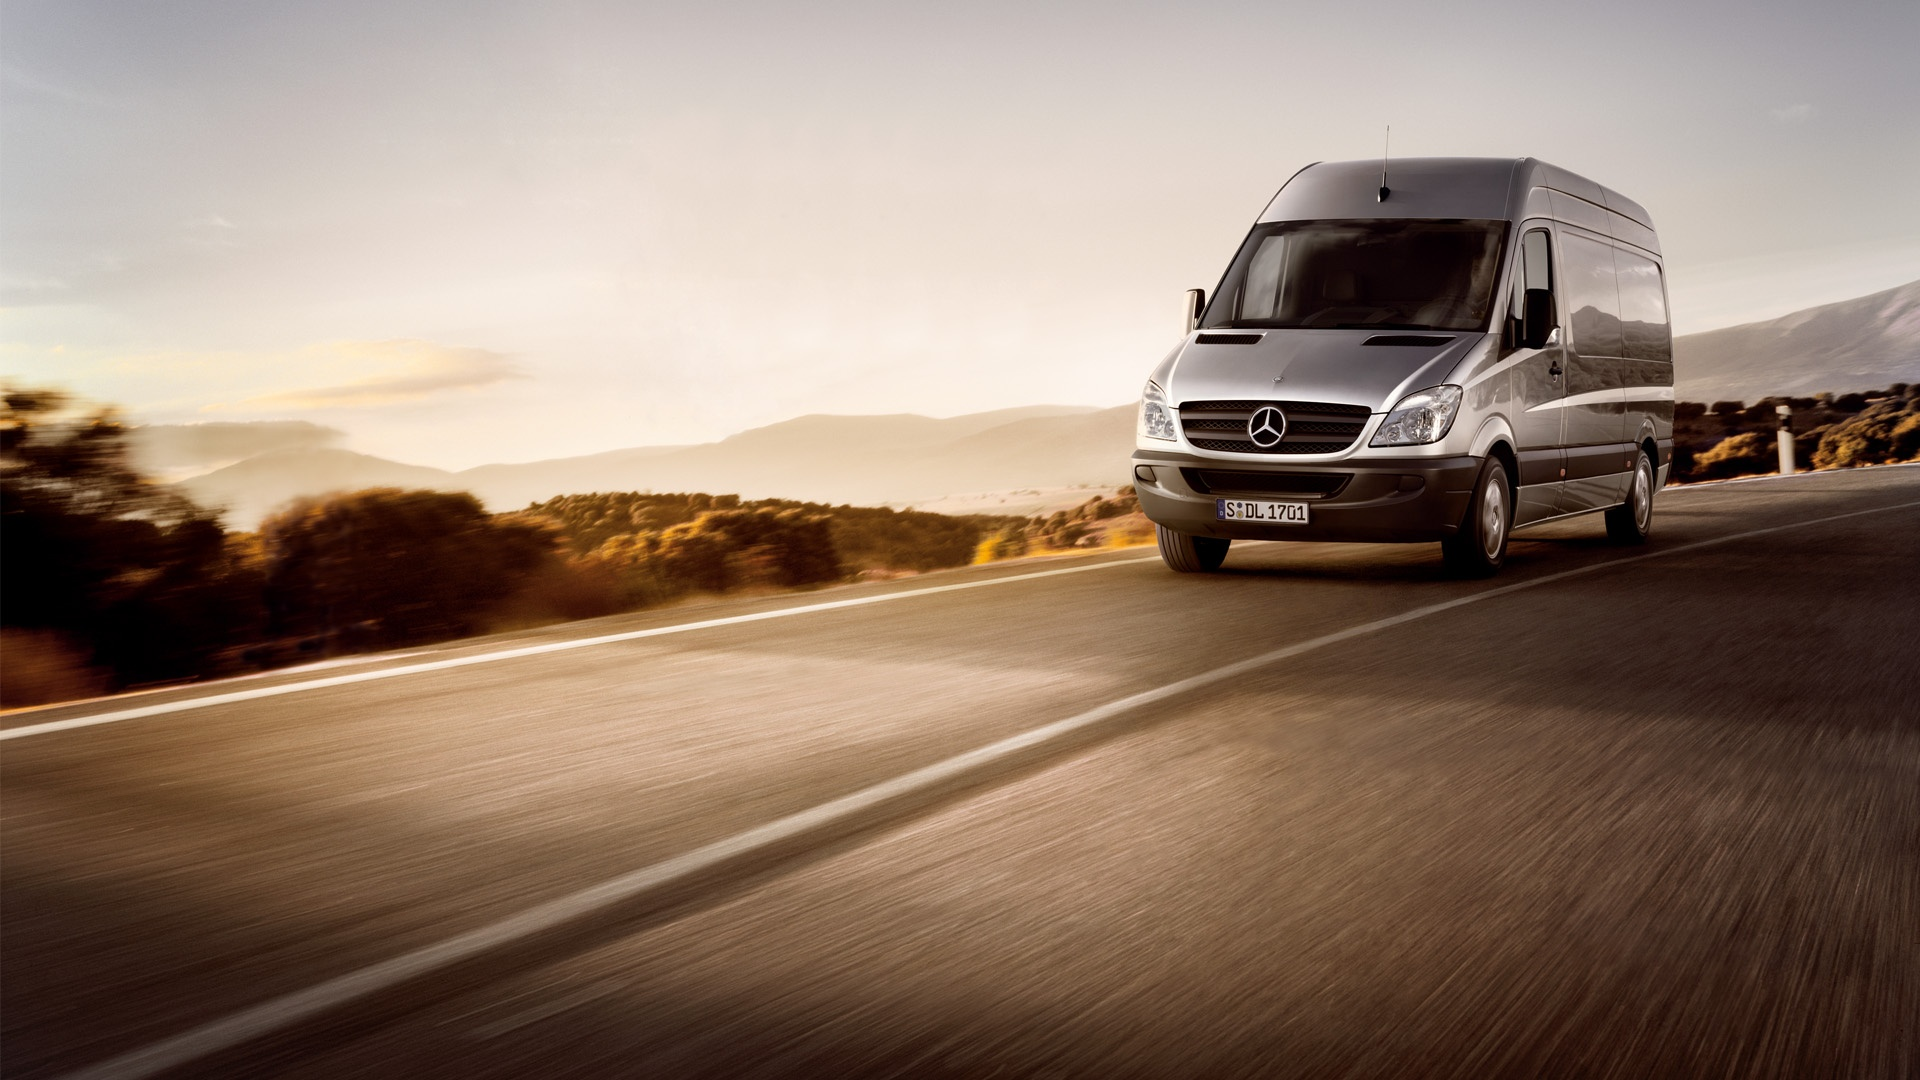 Daimler Transporter Go for Goals